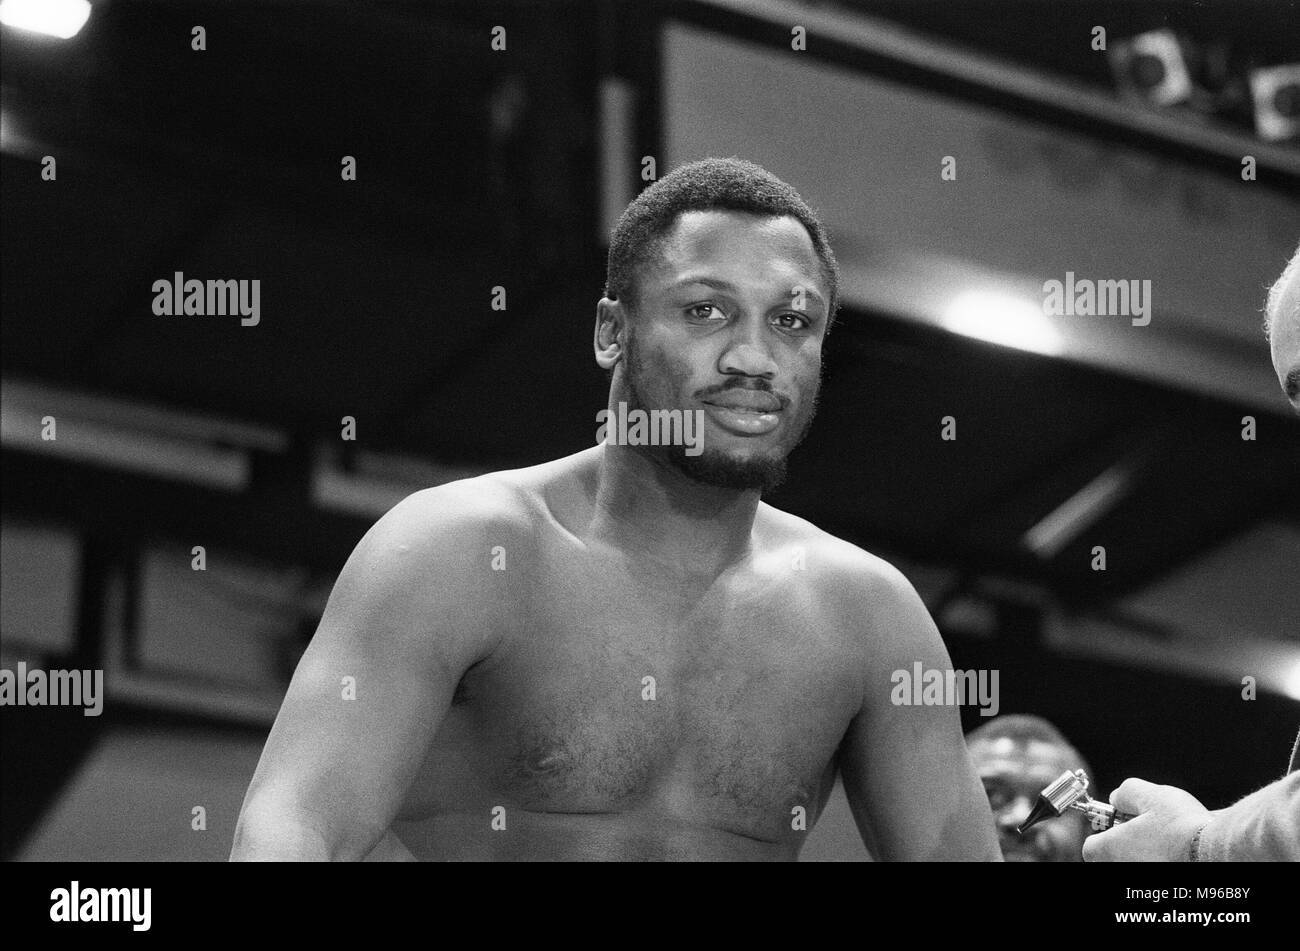 The Fight of the Century (also known as The Fight) is the title boxing writers and historians have given to the boxing match between champion Joe Frazier (26–0, 23 KOs) and challenger Muhammad Ali (31–0, 25 KOs,) held on March 8, 1971, at Madison Square Garden in New York City. Frazier won in 15 rounds via unanimous decision. It was the first time that two undefeated boxers fought each other for the heavyweight title. (Picture) Joe Frazier having a pre-fight medical for 'The Fight of the Century.' 4th March 1971 - Stock Image